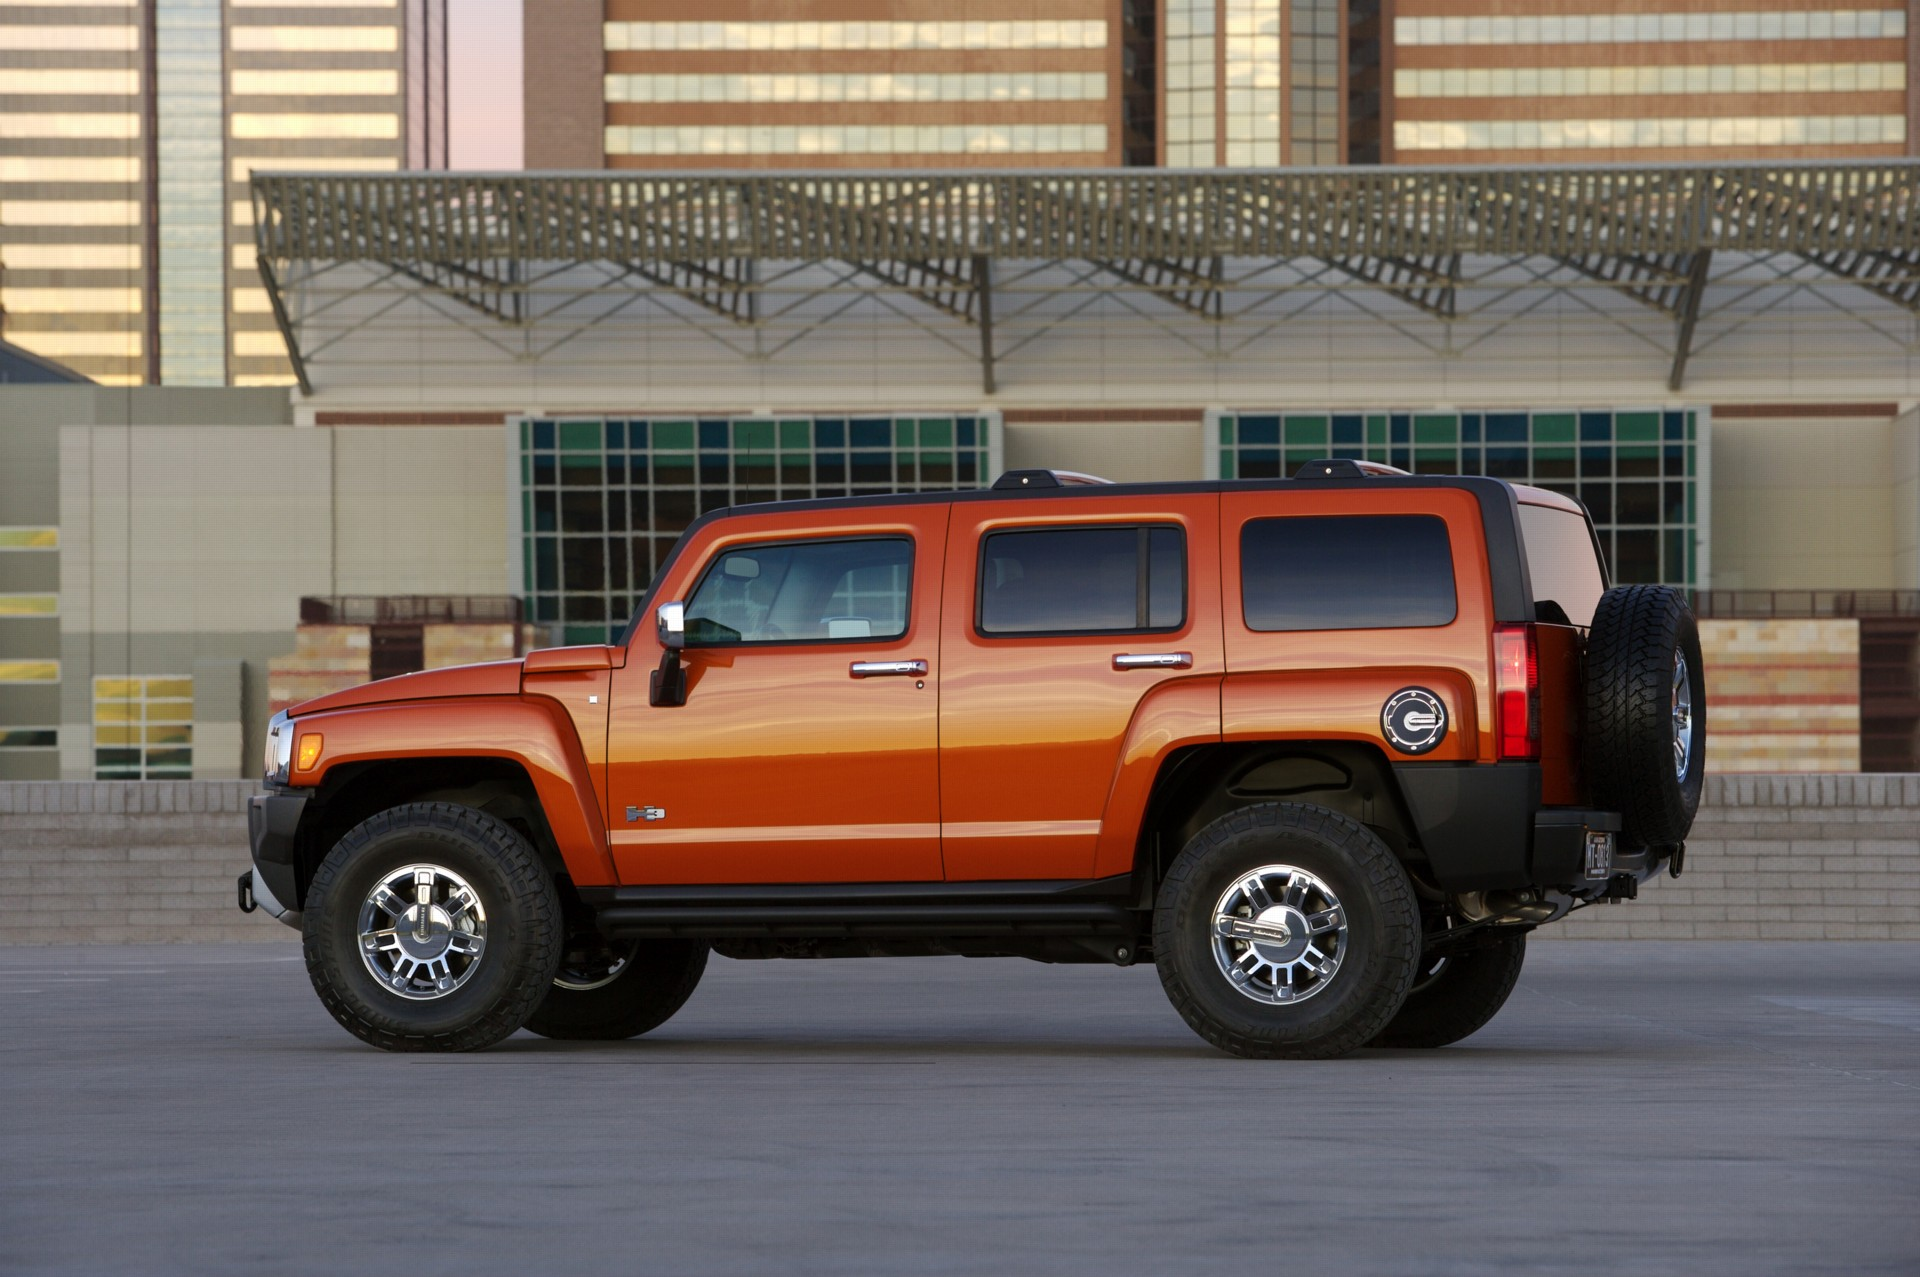 2008 Hummer H3 Alpha Technical Specifications and data Engine